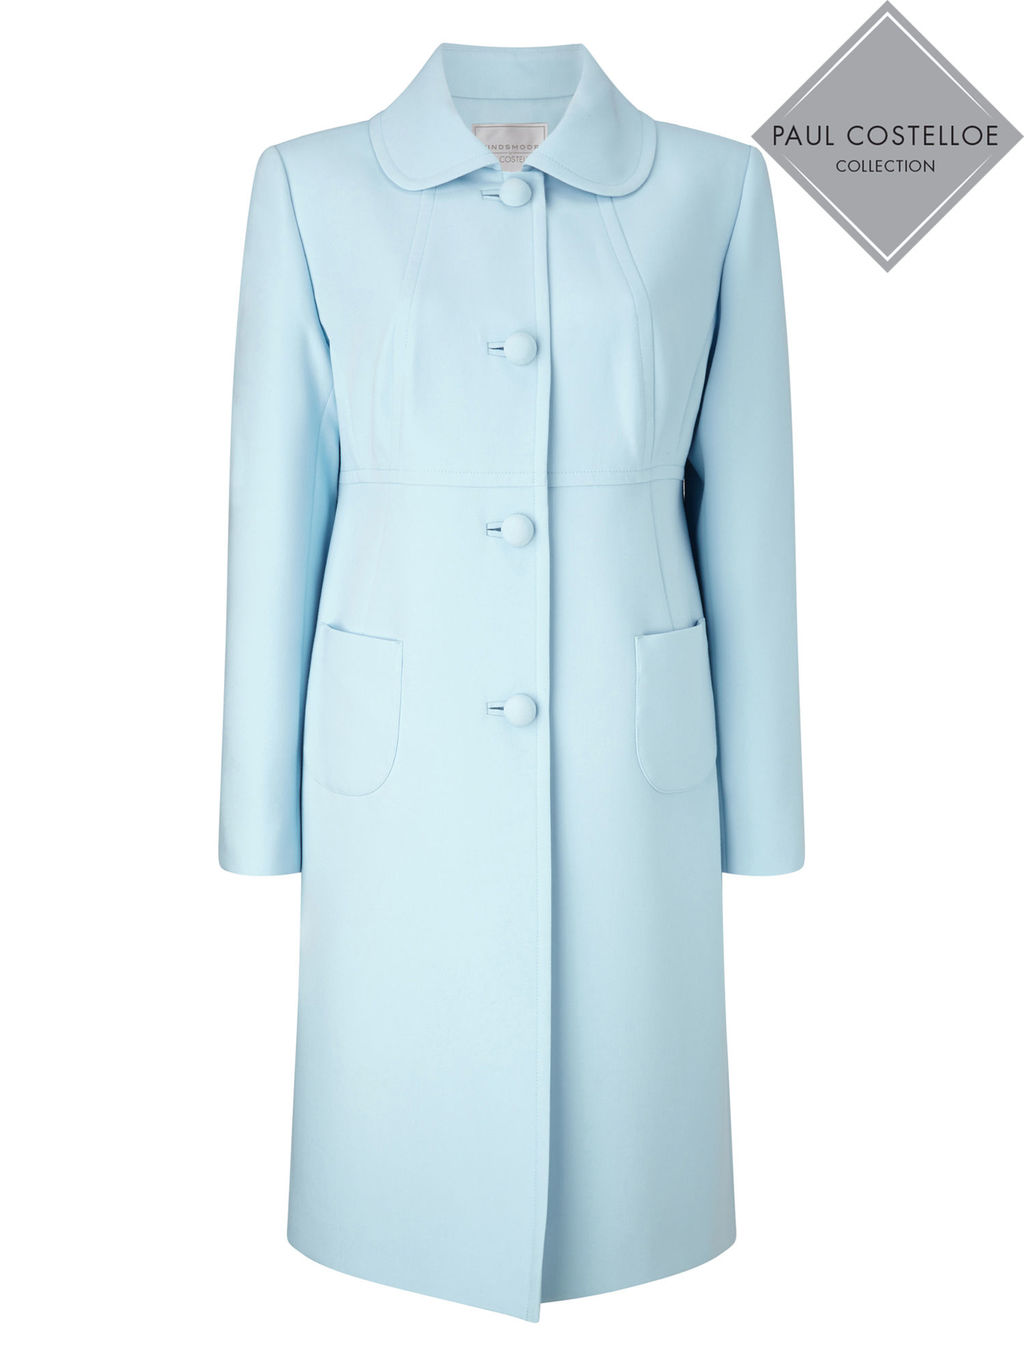 Paul Costelloe Sandown Coat - pattern: plain; style: single breasted; length: mid thigh; predominant colour: pale blue; fit: tailored/fitted; fibres: polyester/polyamide - stretch; occasions: occasion; collar: shirt collar/peter pan/zip with opening; sleeve length: long sleeve; sleeve style: standard; collar break: high; pattern type: fabric; texture group: other - light to midweight; season: s/s 2016; wardrobe: event